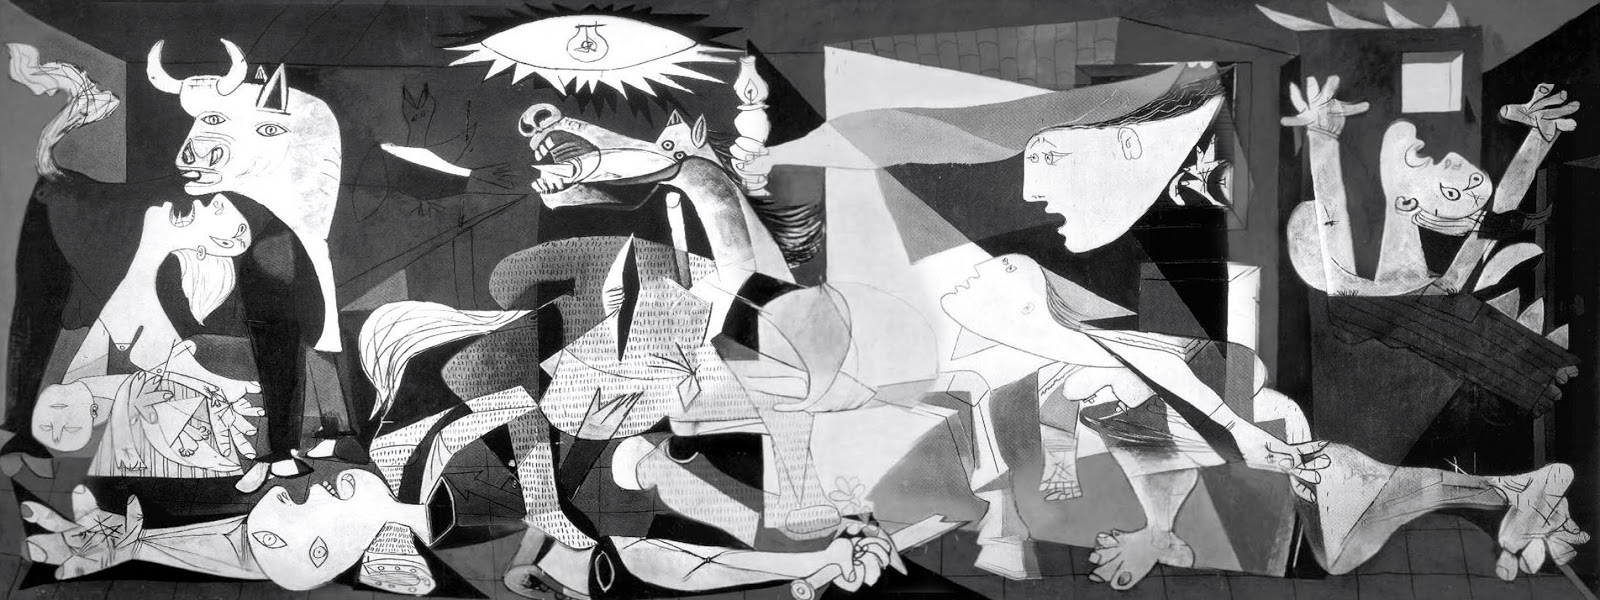 Anti war painting by cubist painter Pablo Picasso, Guernica is crated in 1937.